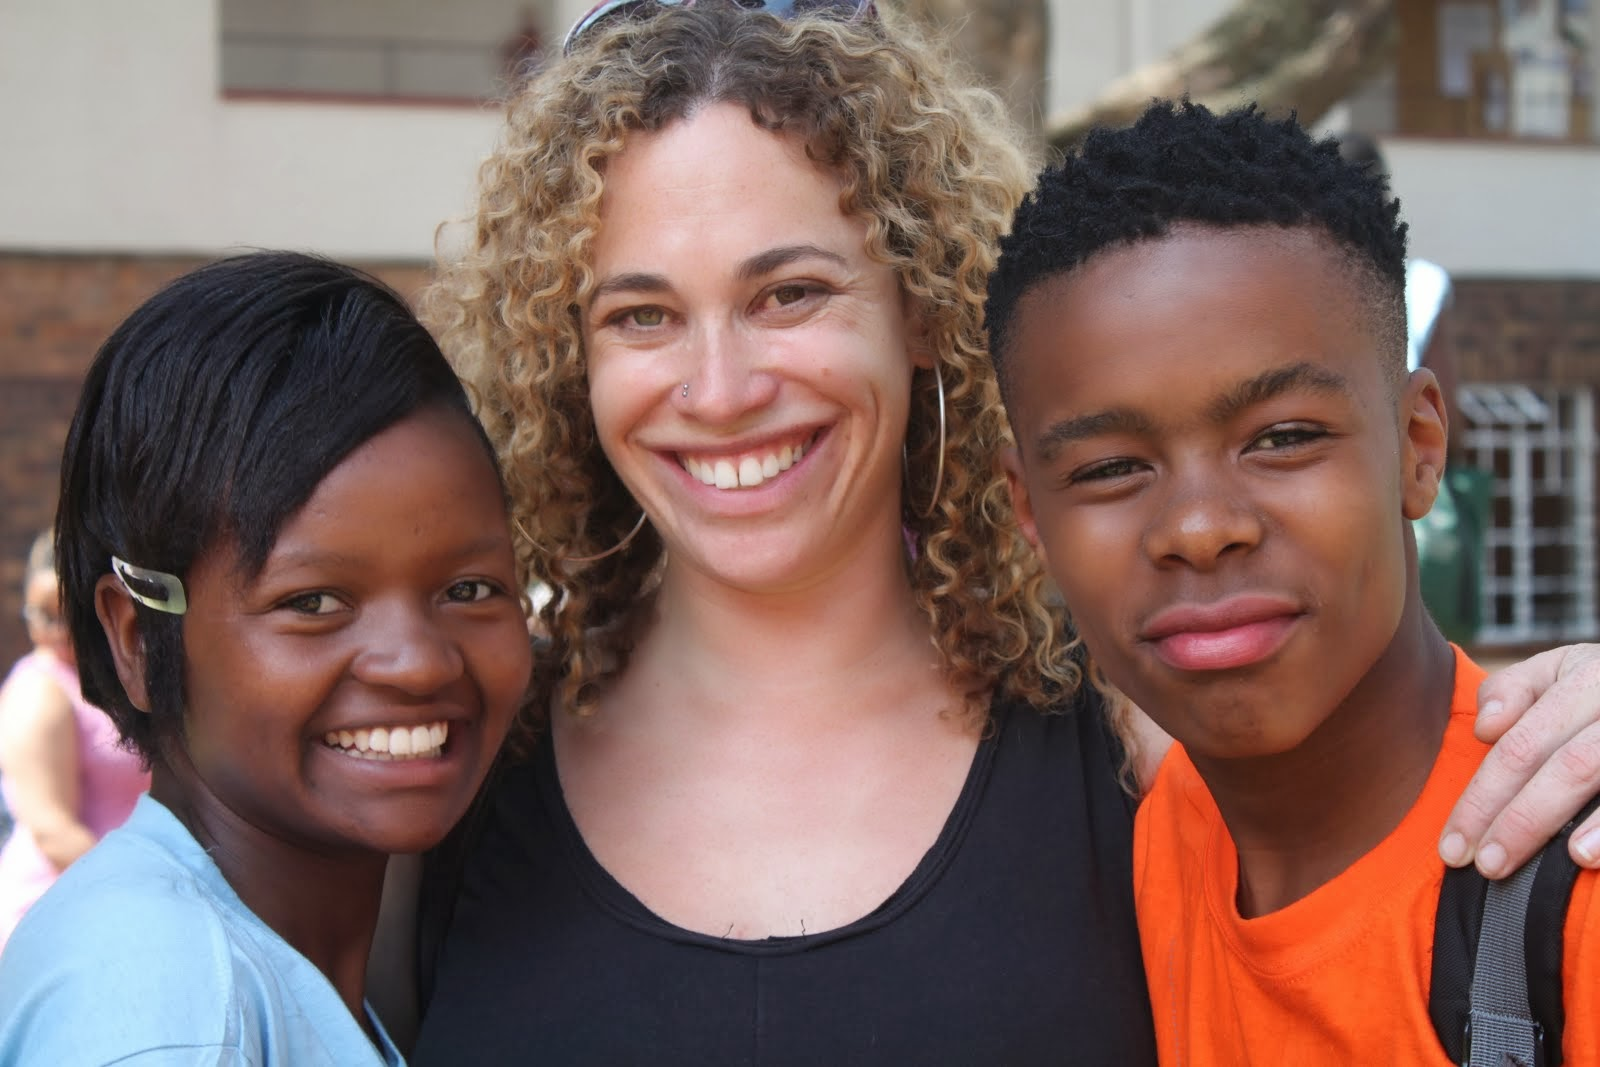 Nicky and her mentees, Zanele and Sandile